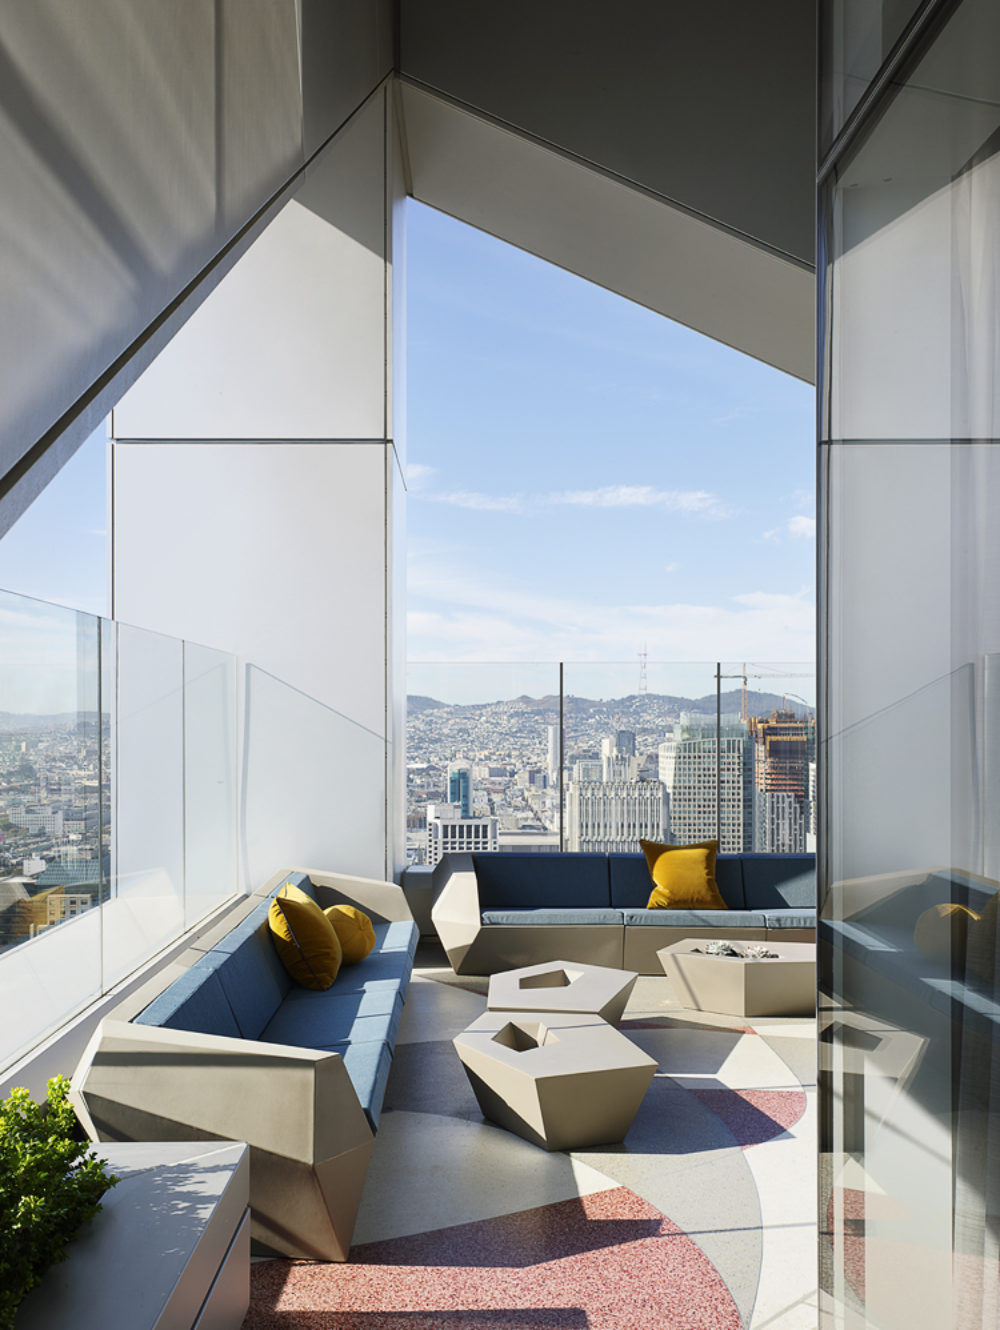 Exterior view of top floor balcony at 181 Fremont condominiums with a skyline view of San Francisco in the daytime.